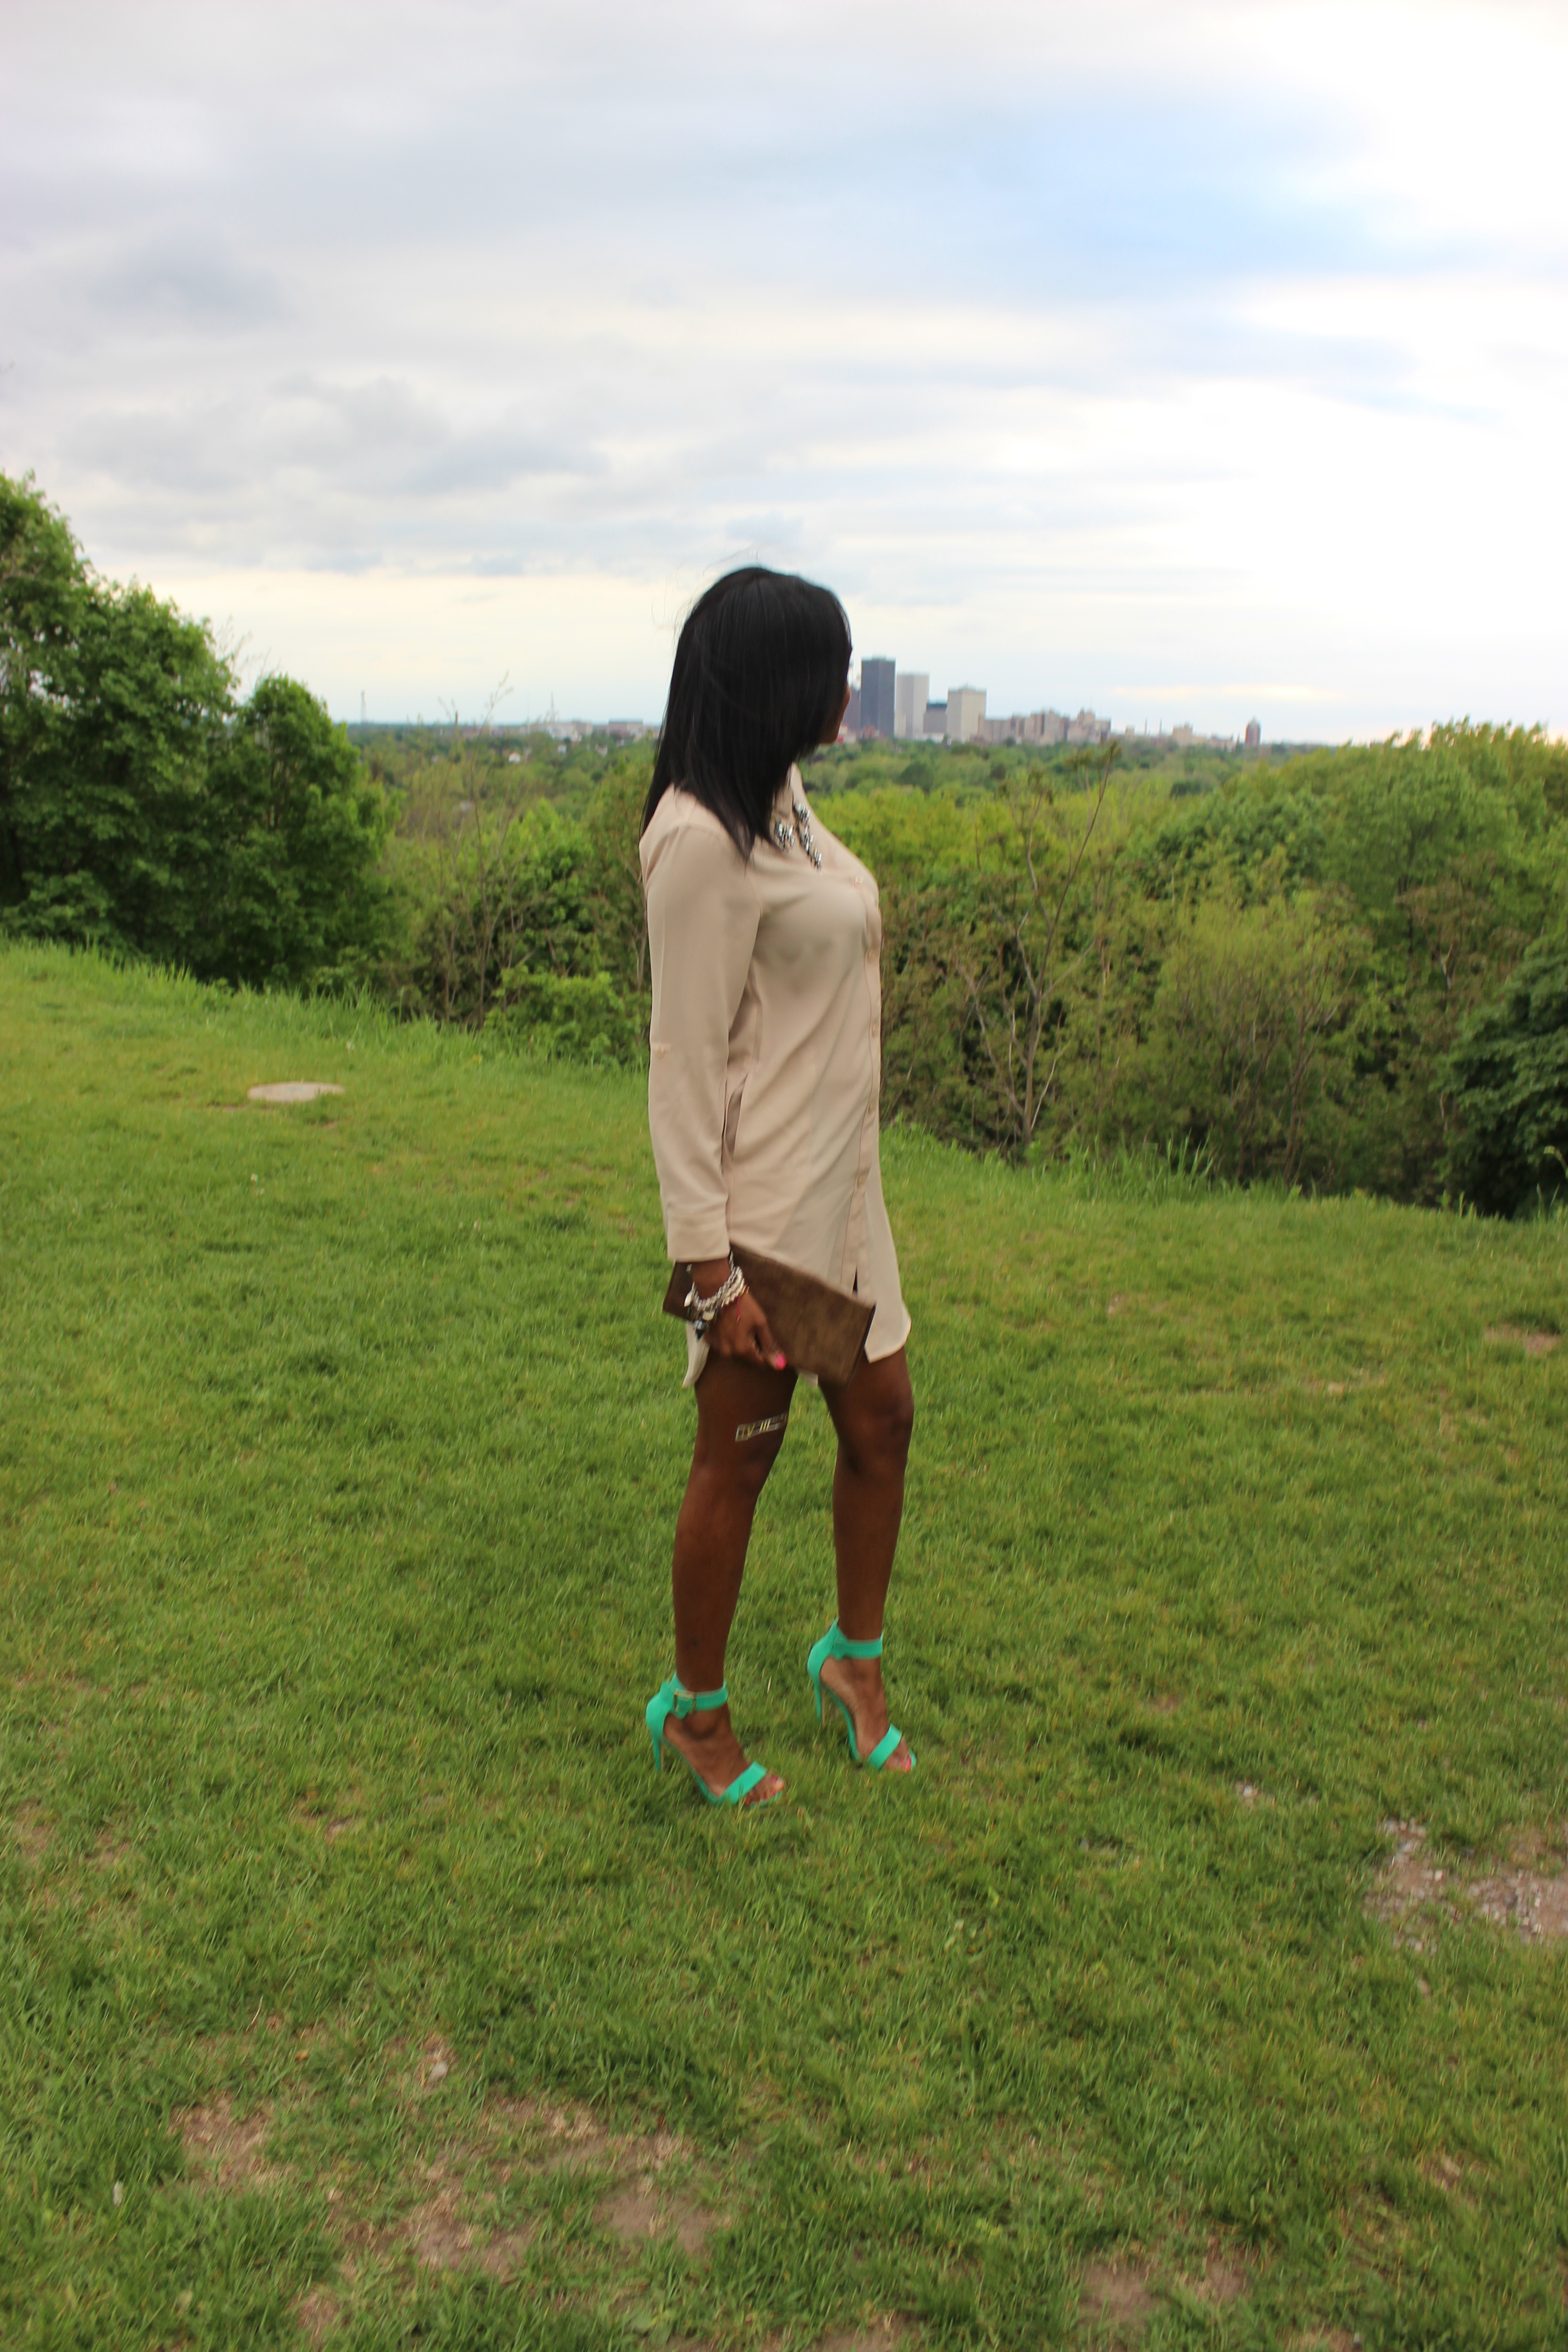 Style-Files-with-Pretty-Price-TJMaxx-Nude-Shirt-Dress-Nude-Tunic-just-fab-Paean-seamfoam-mint-green-ankle-strap-sandals-forever-21-distressed-cut-off-shorts-Pink-turban-justfab-Taesha-leopard-print-lace-up-heel-sandals-5